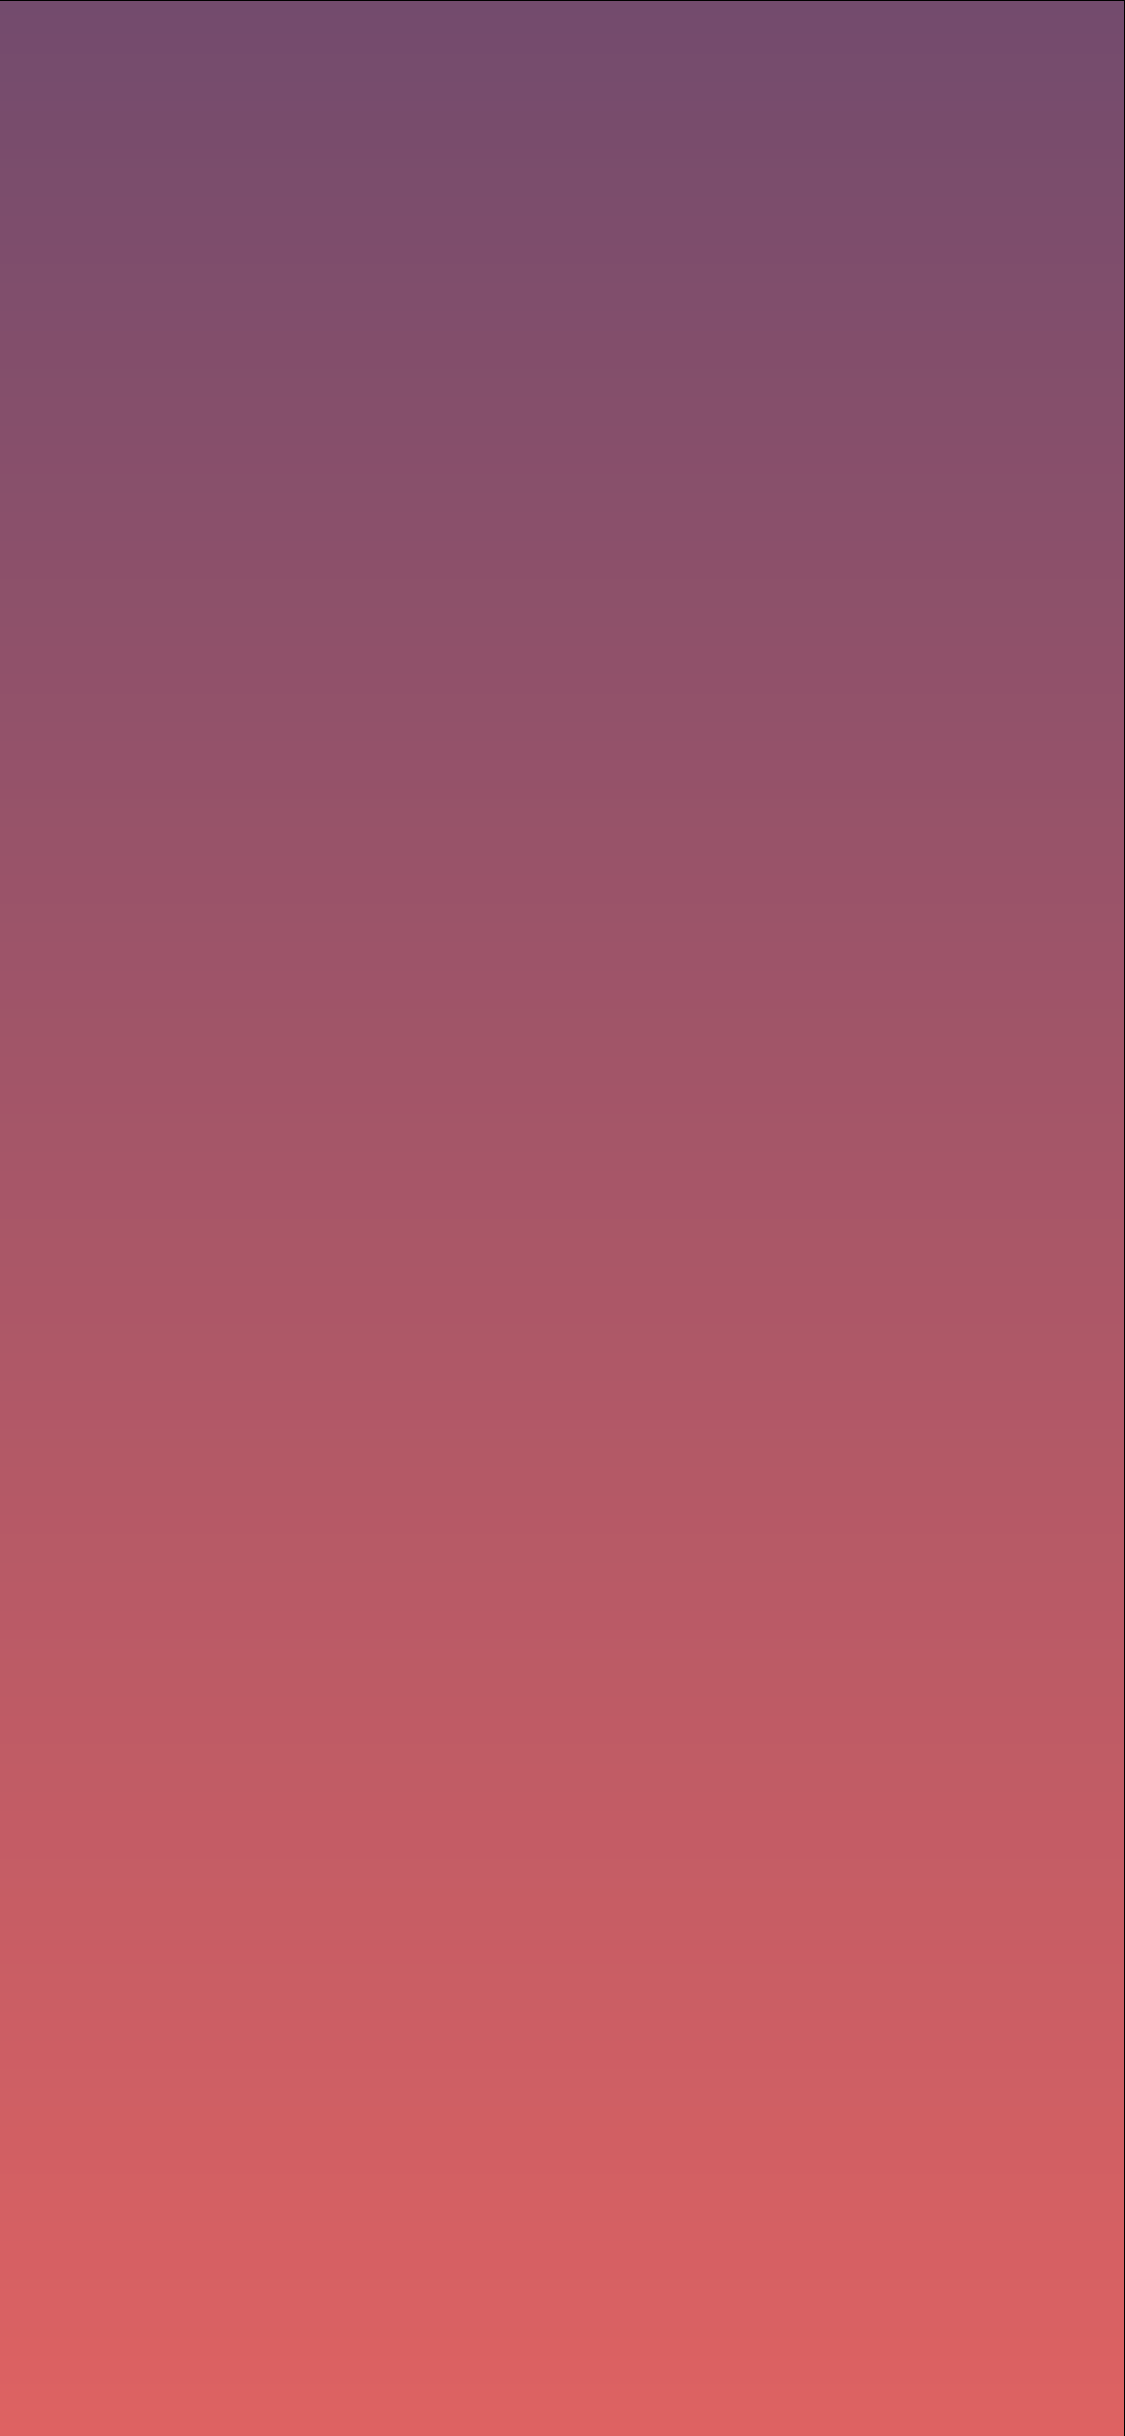 Gradient Wallpaper For Iphone 11 Pro Max Red Wallpaper Holiday Red Paint Cleanup